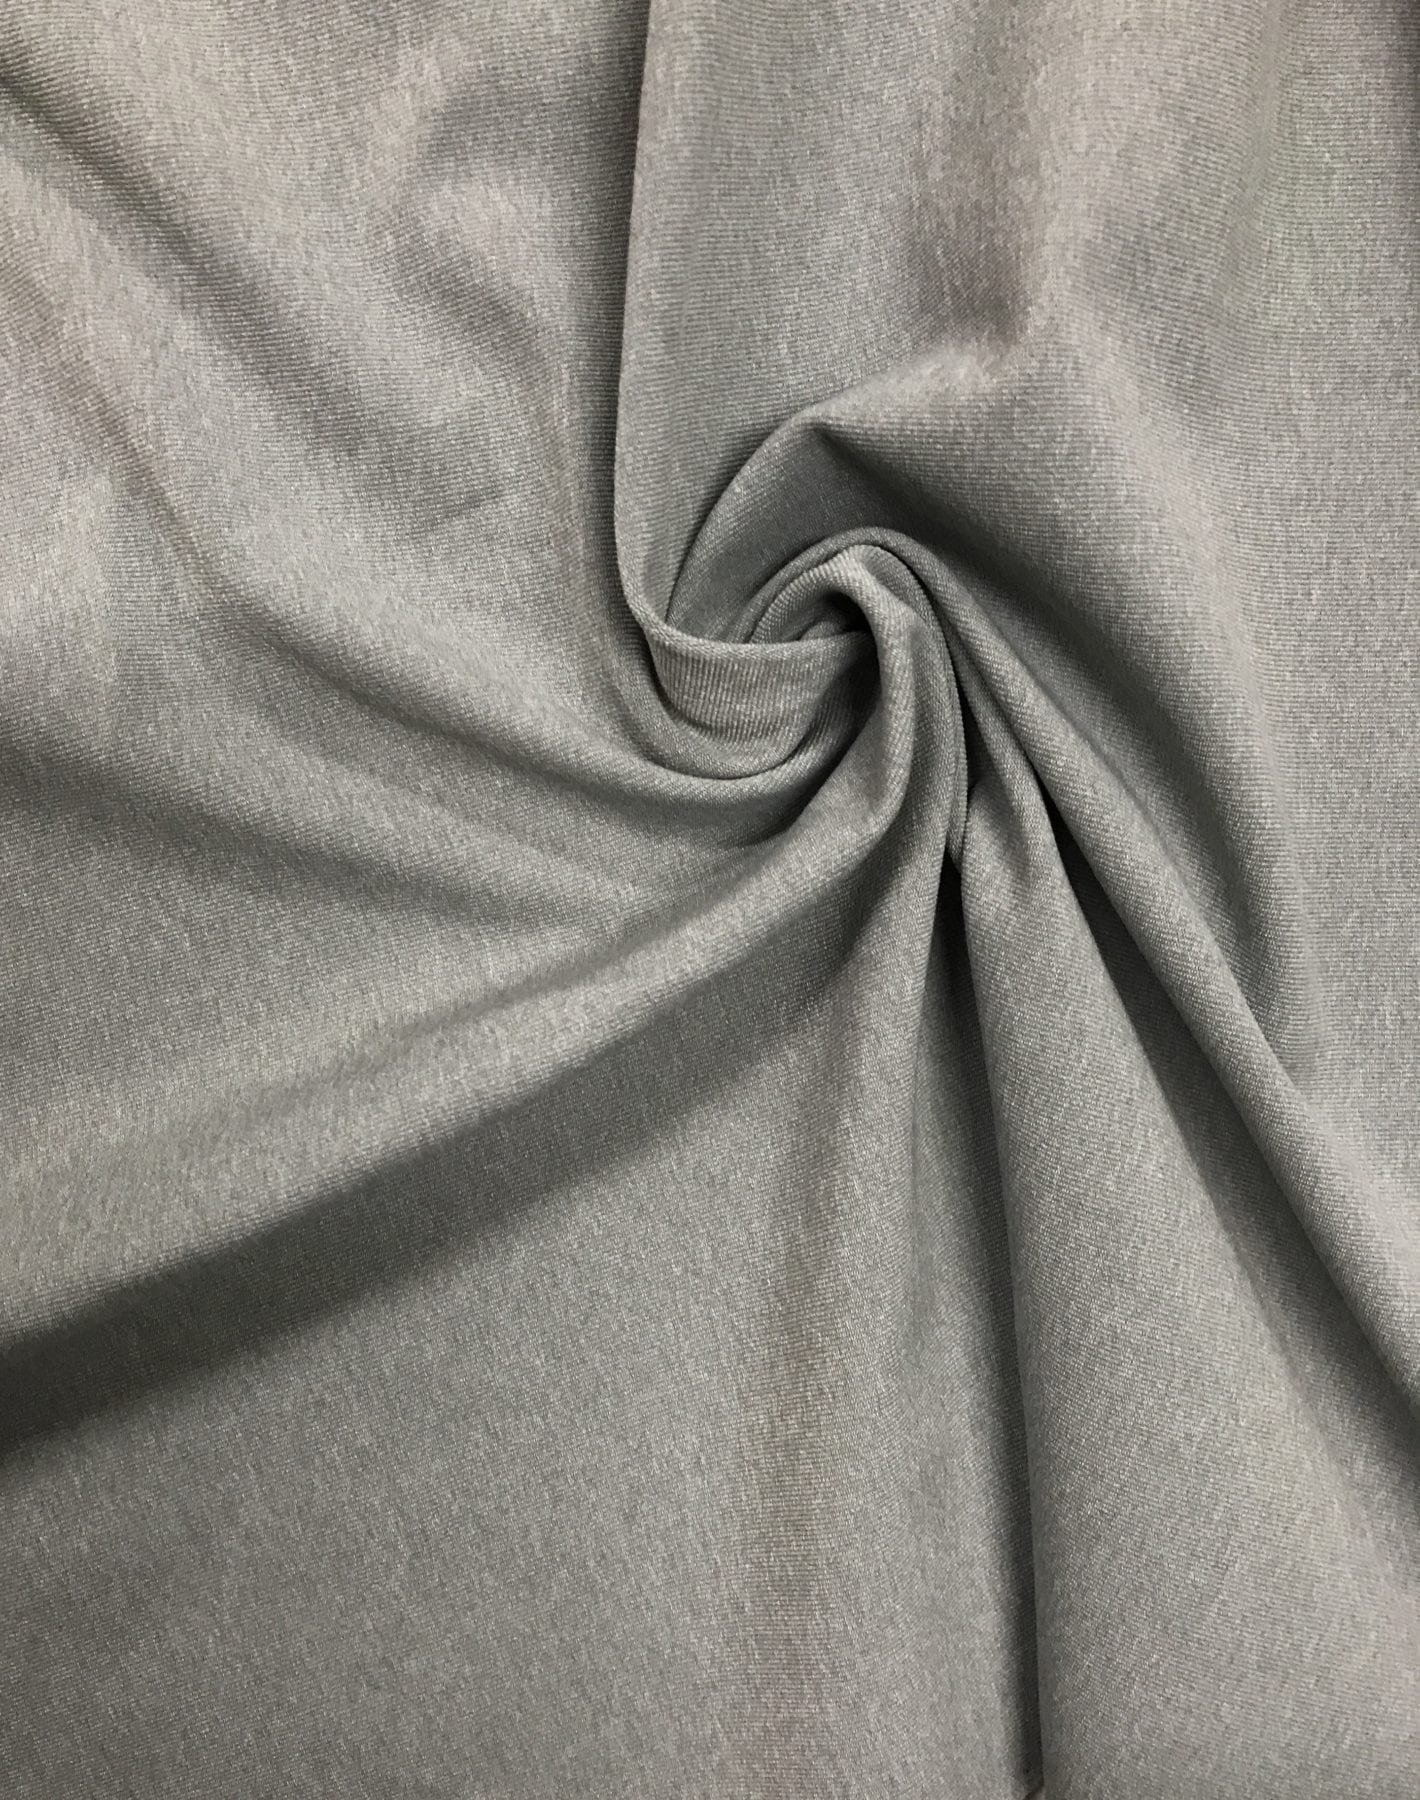 Heather Grey Moisture Wicking Supplex, Invista Supplex fabirc, moisture wicking activewear fabric, wicking supplex, moisture wicking supplex, supplex spandex